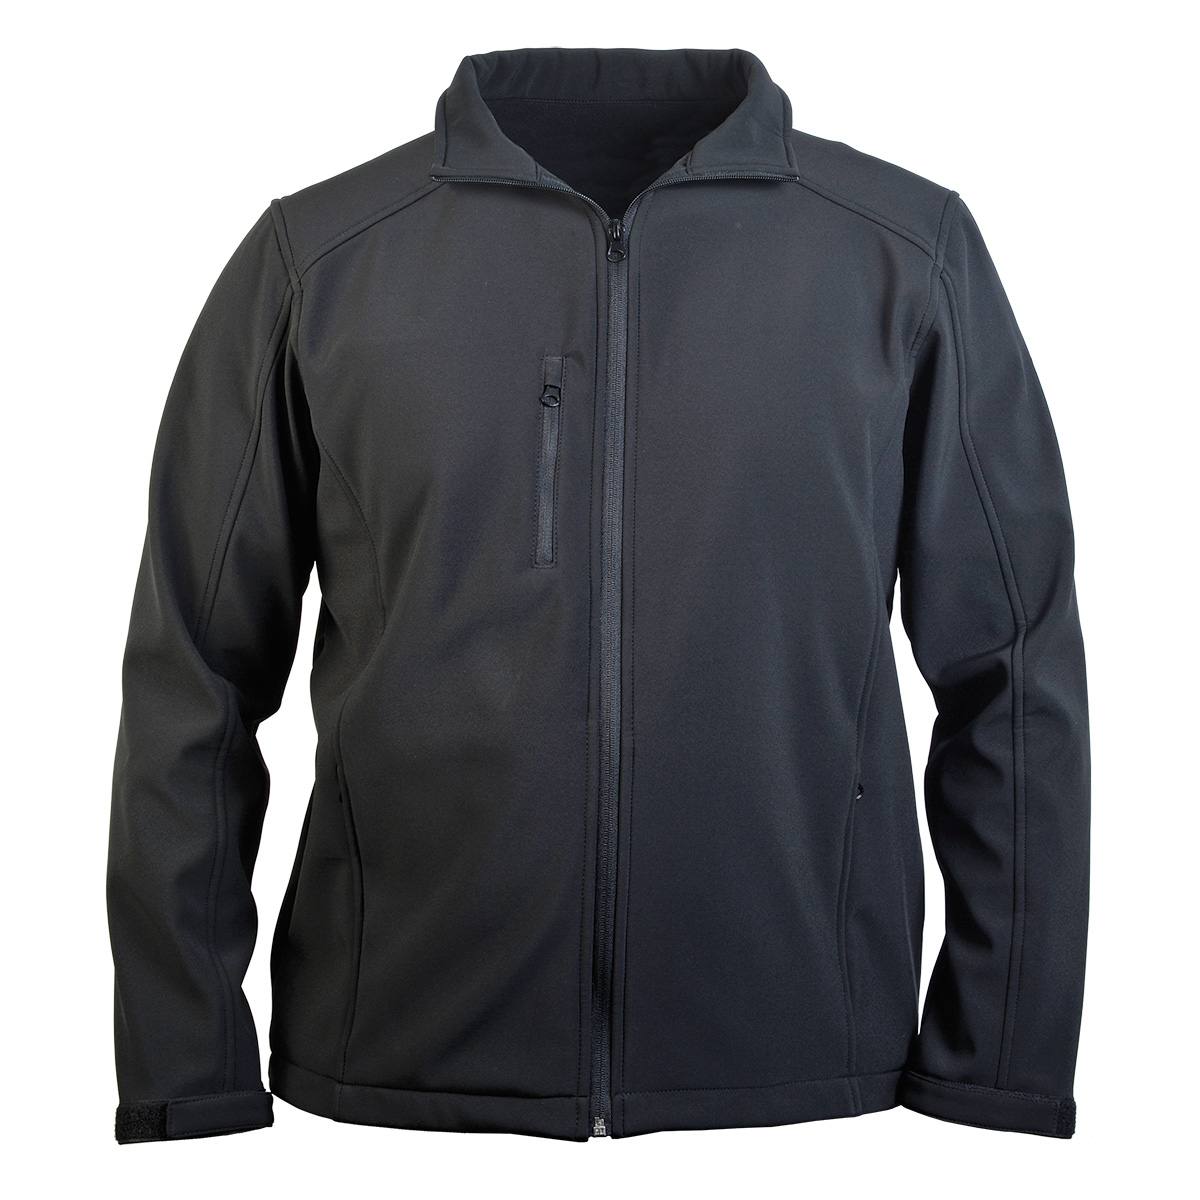 GSCC The Softshell Men's